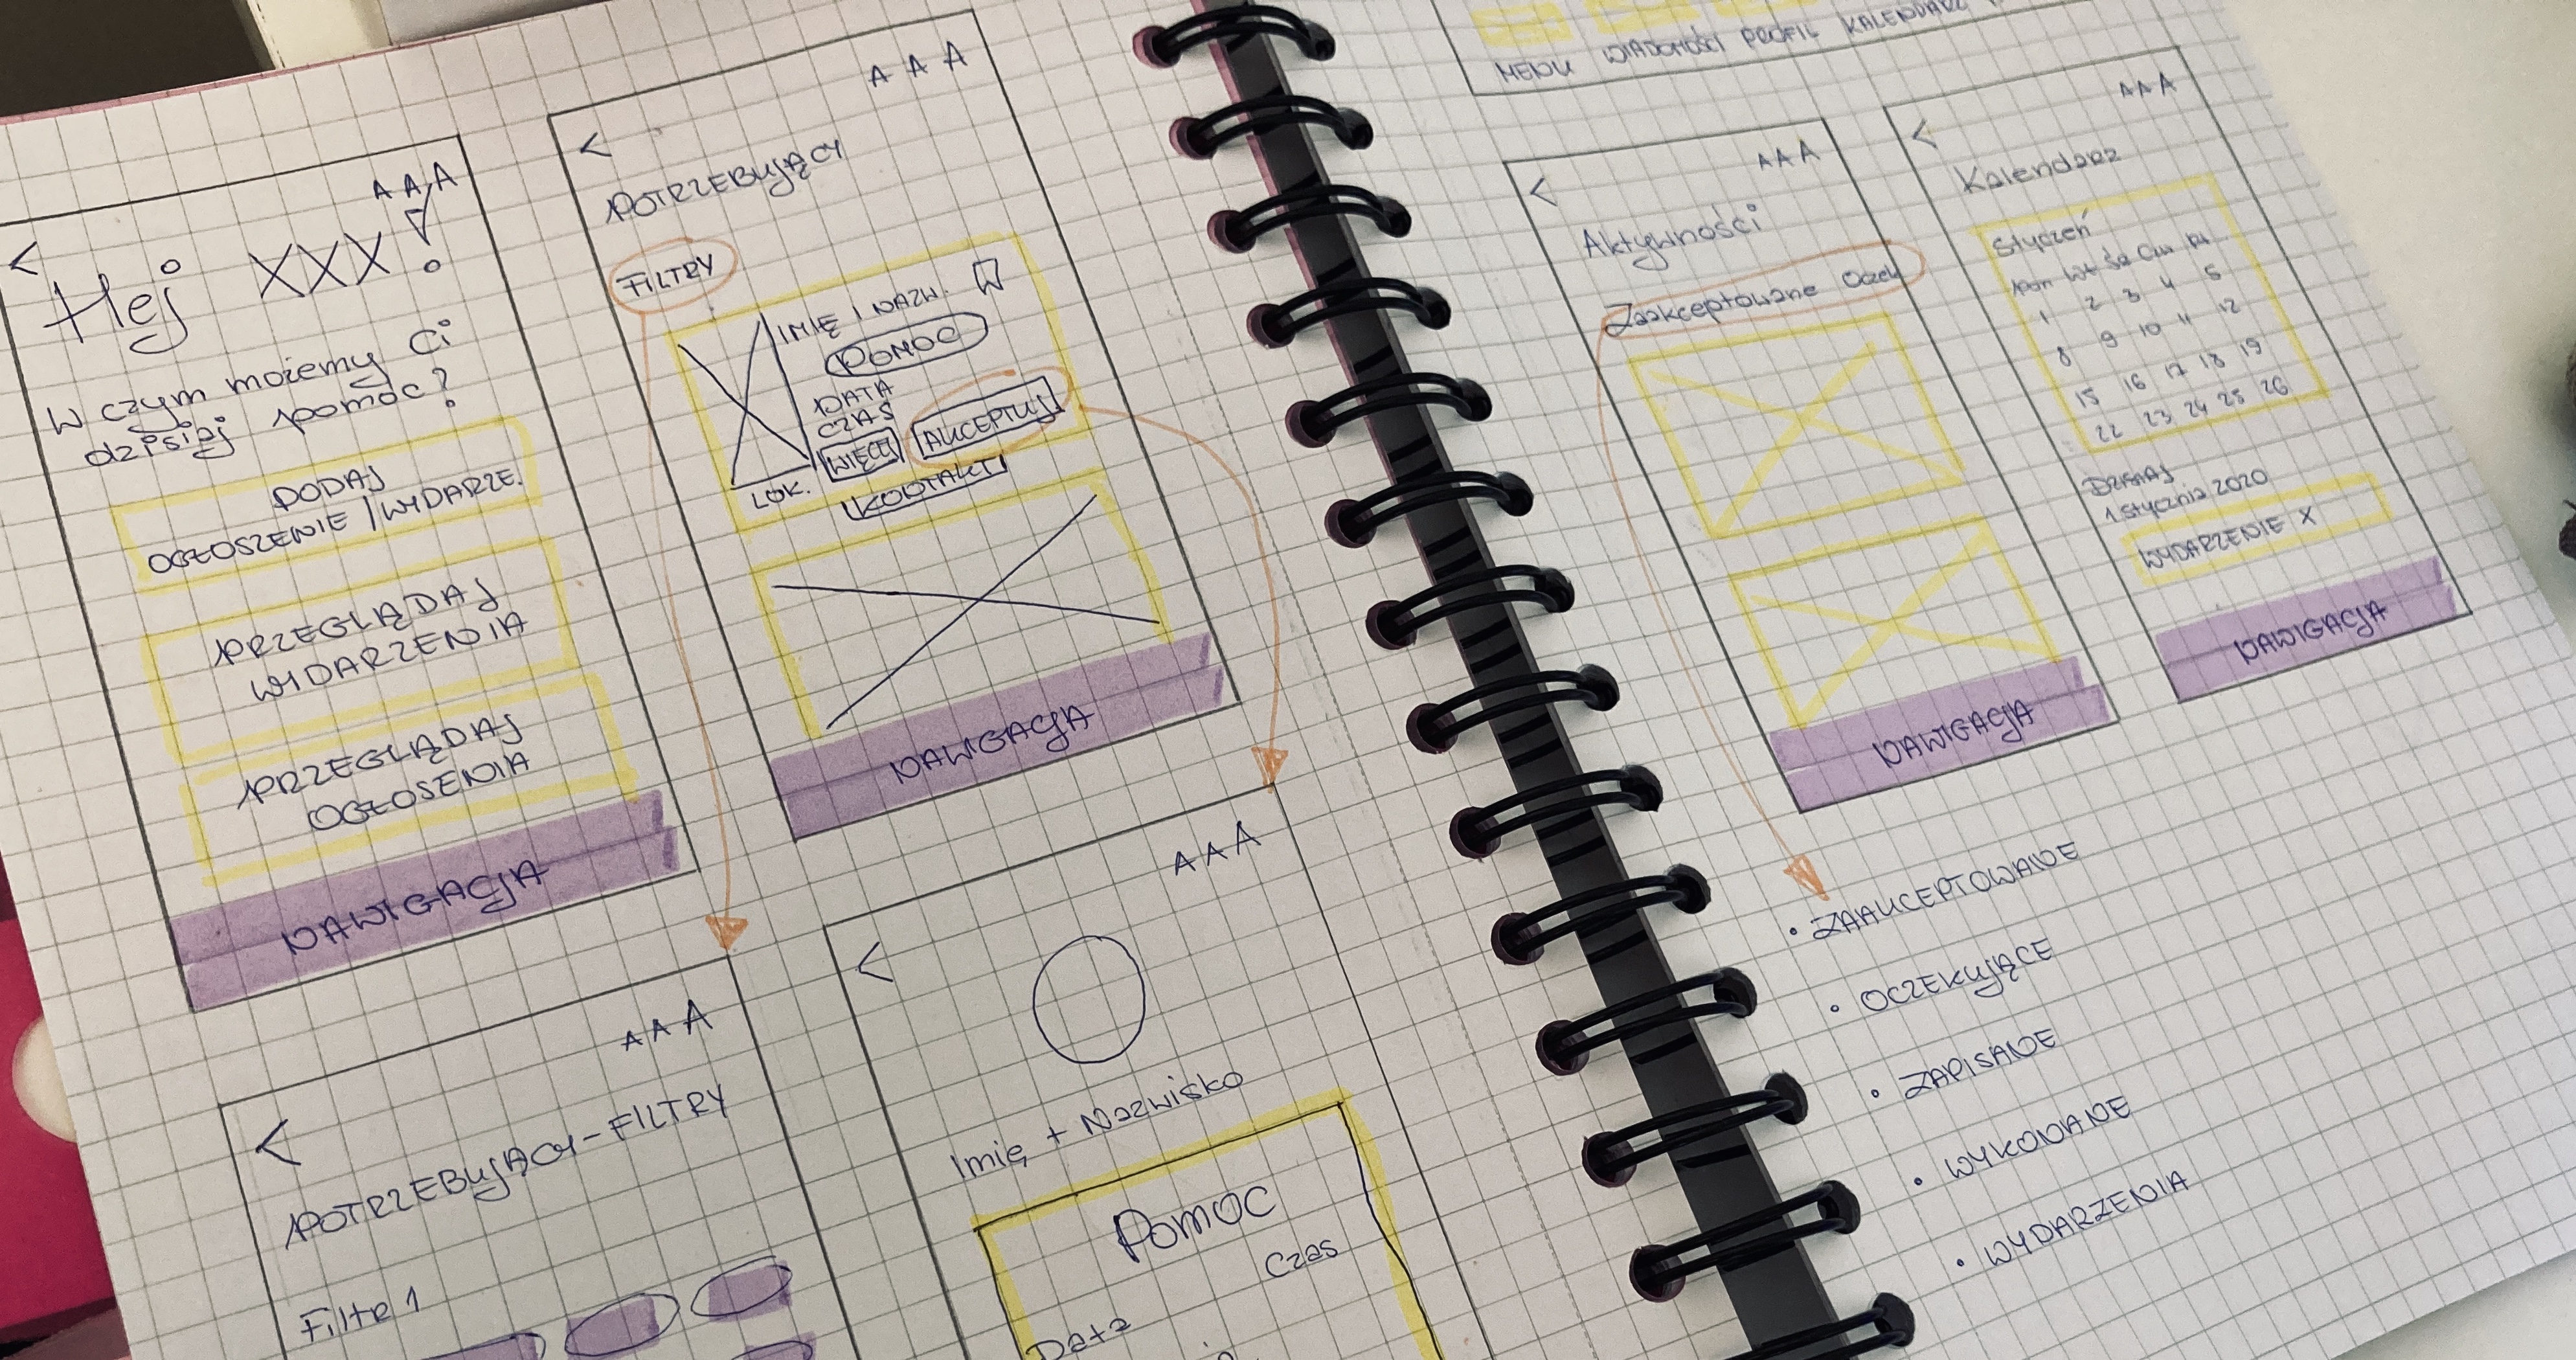 My path to becoming a product designer at Untitled Kingdom - UX/UI sketches